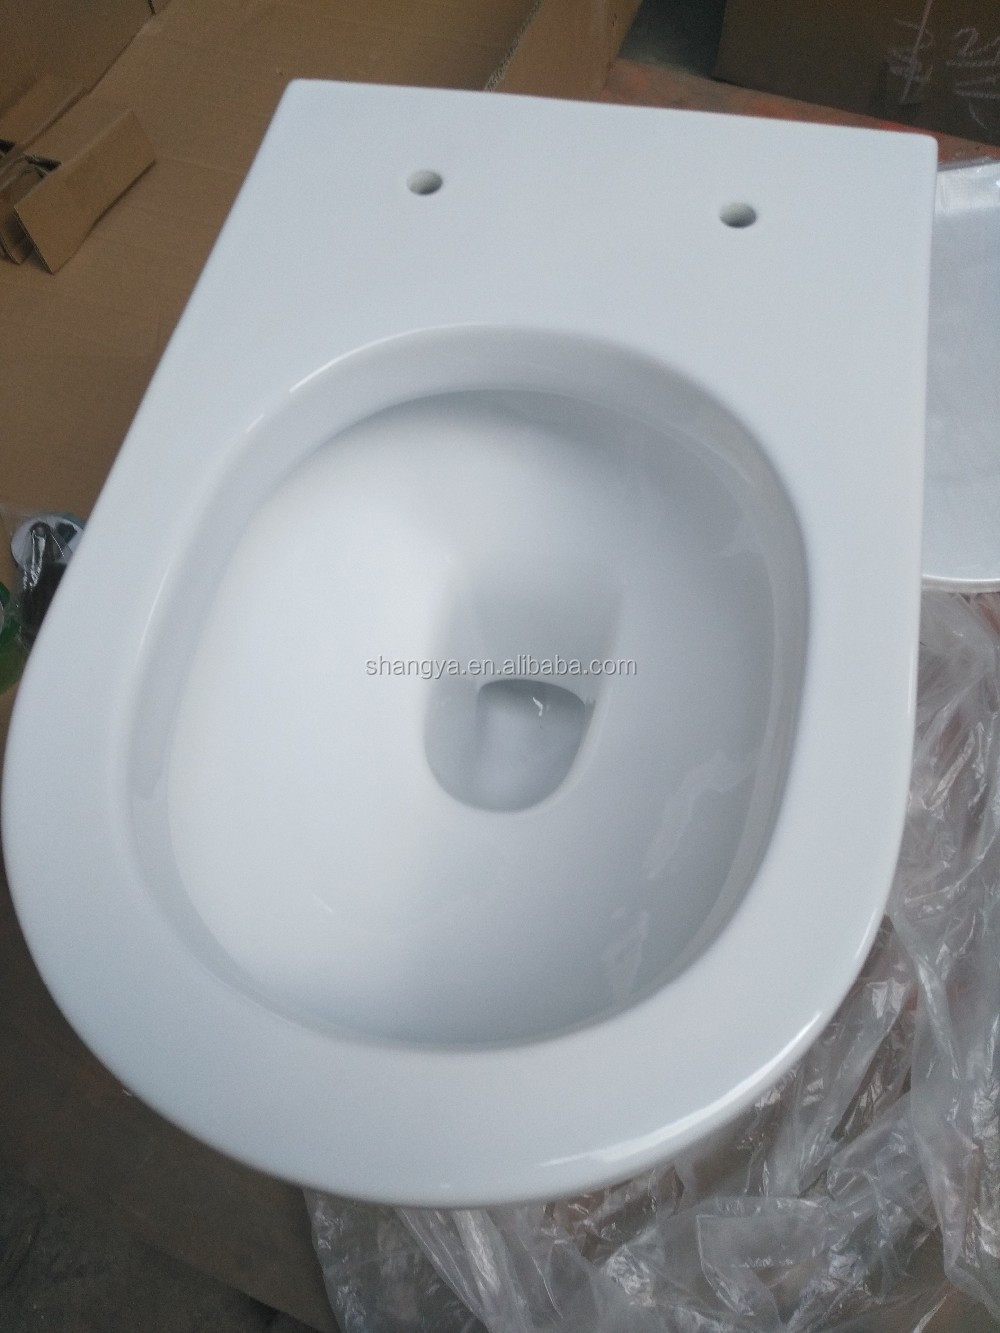 White Color High Quality Ceramic Wall Hung Toilet Bowl With Soft Closing Seat